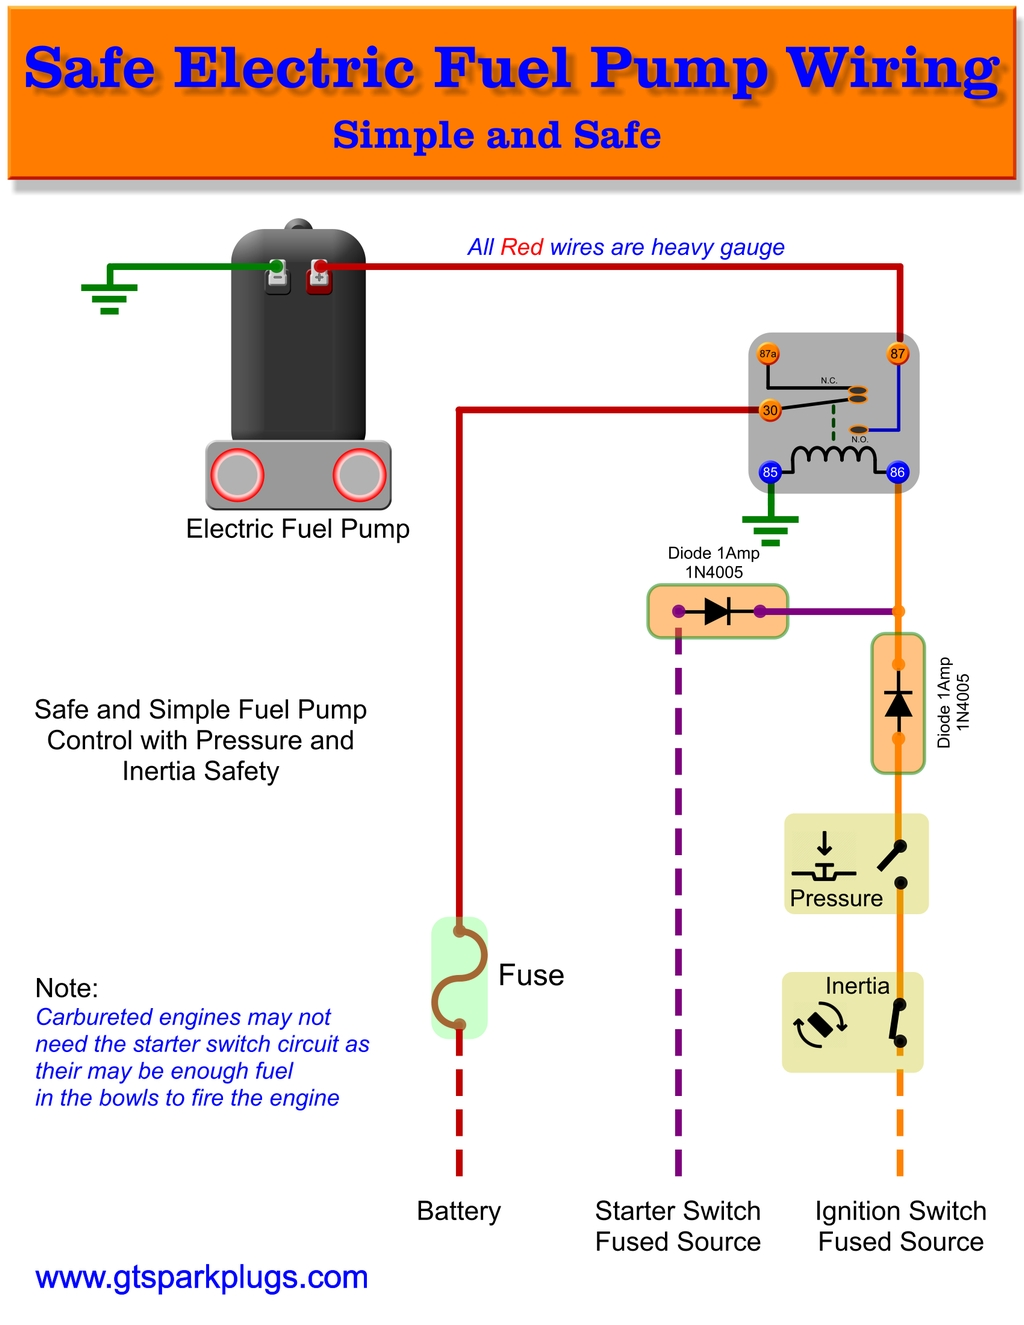 safe fuel pump wiring 1024x fuel pump wiring schematic explore wiring diagram on the net \u2022